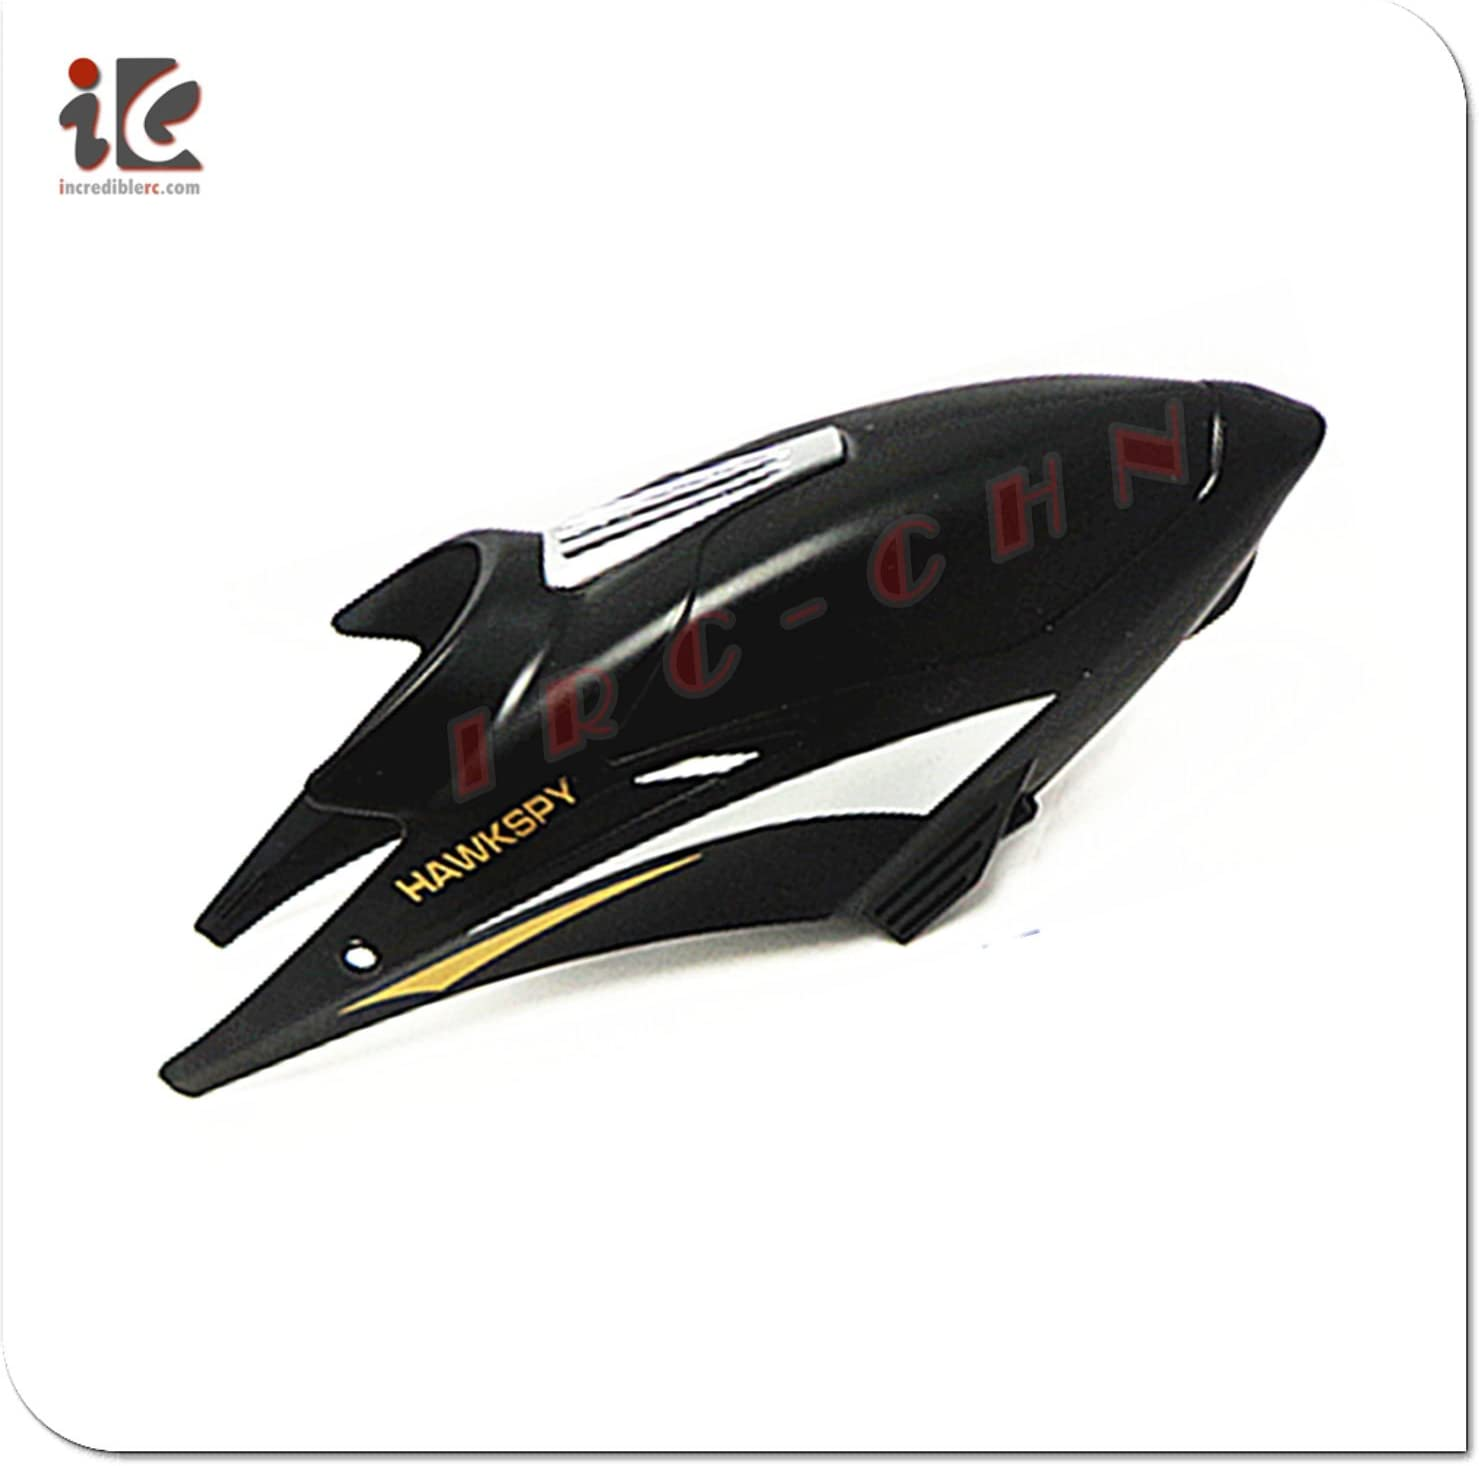 shipfree 1X BLACK HEAD COVER CANOPY EGOFLY P HAWKSPY security RC HELICOPTER LT-711